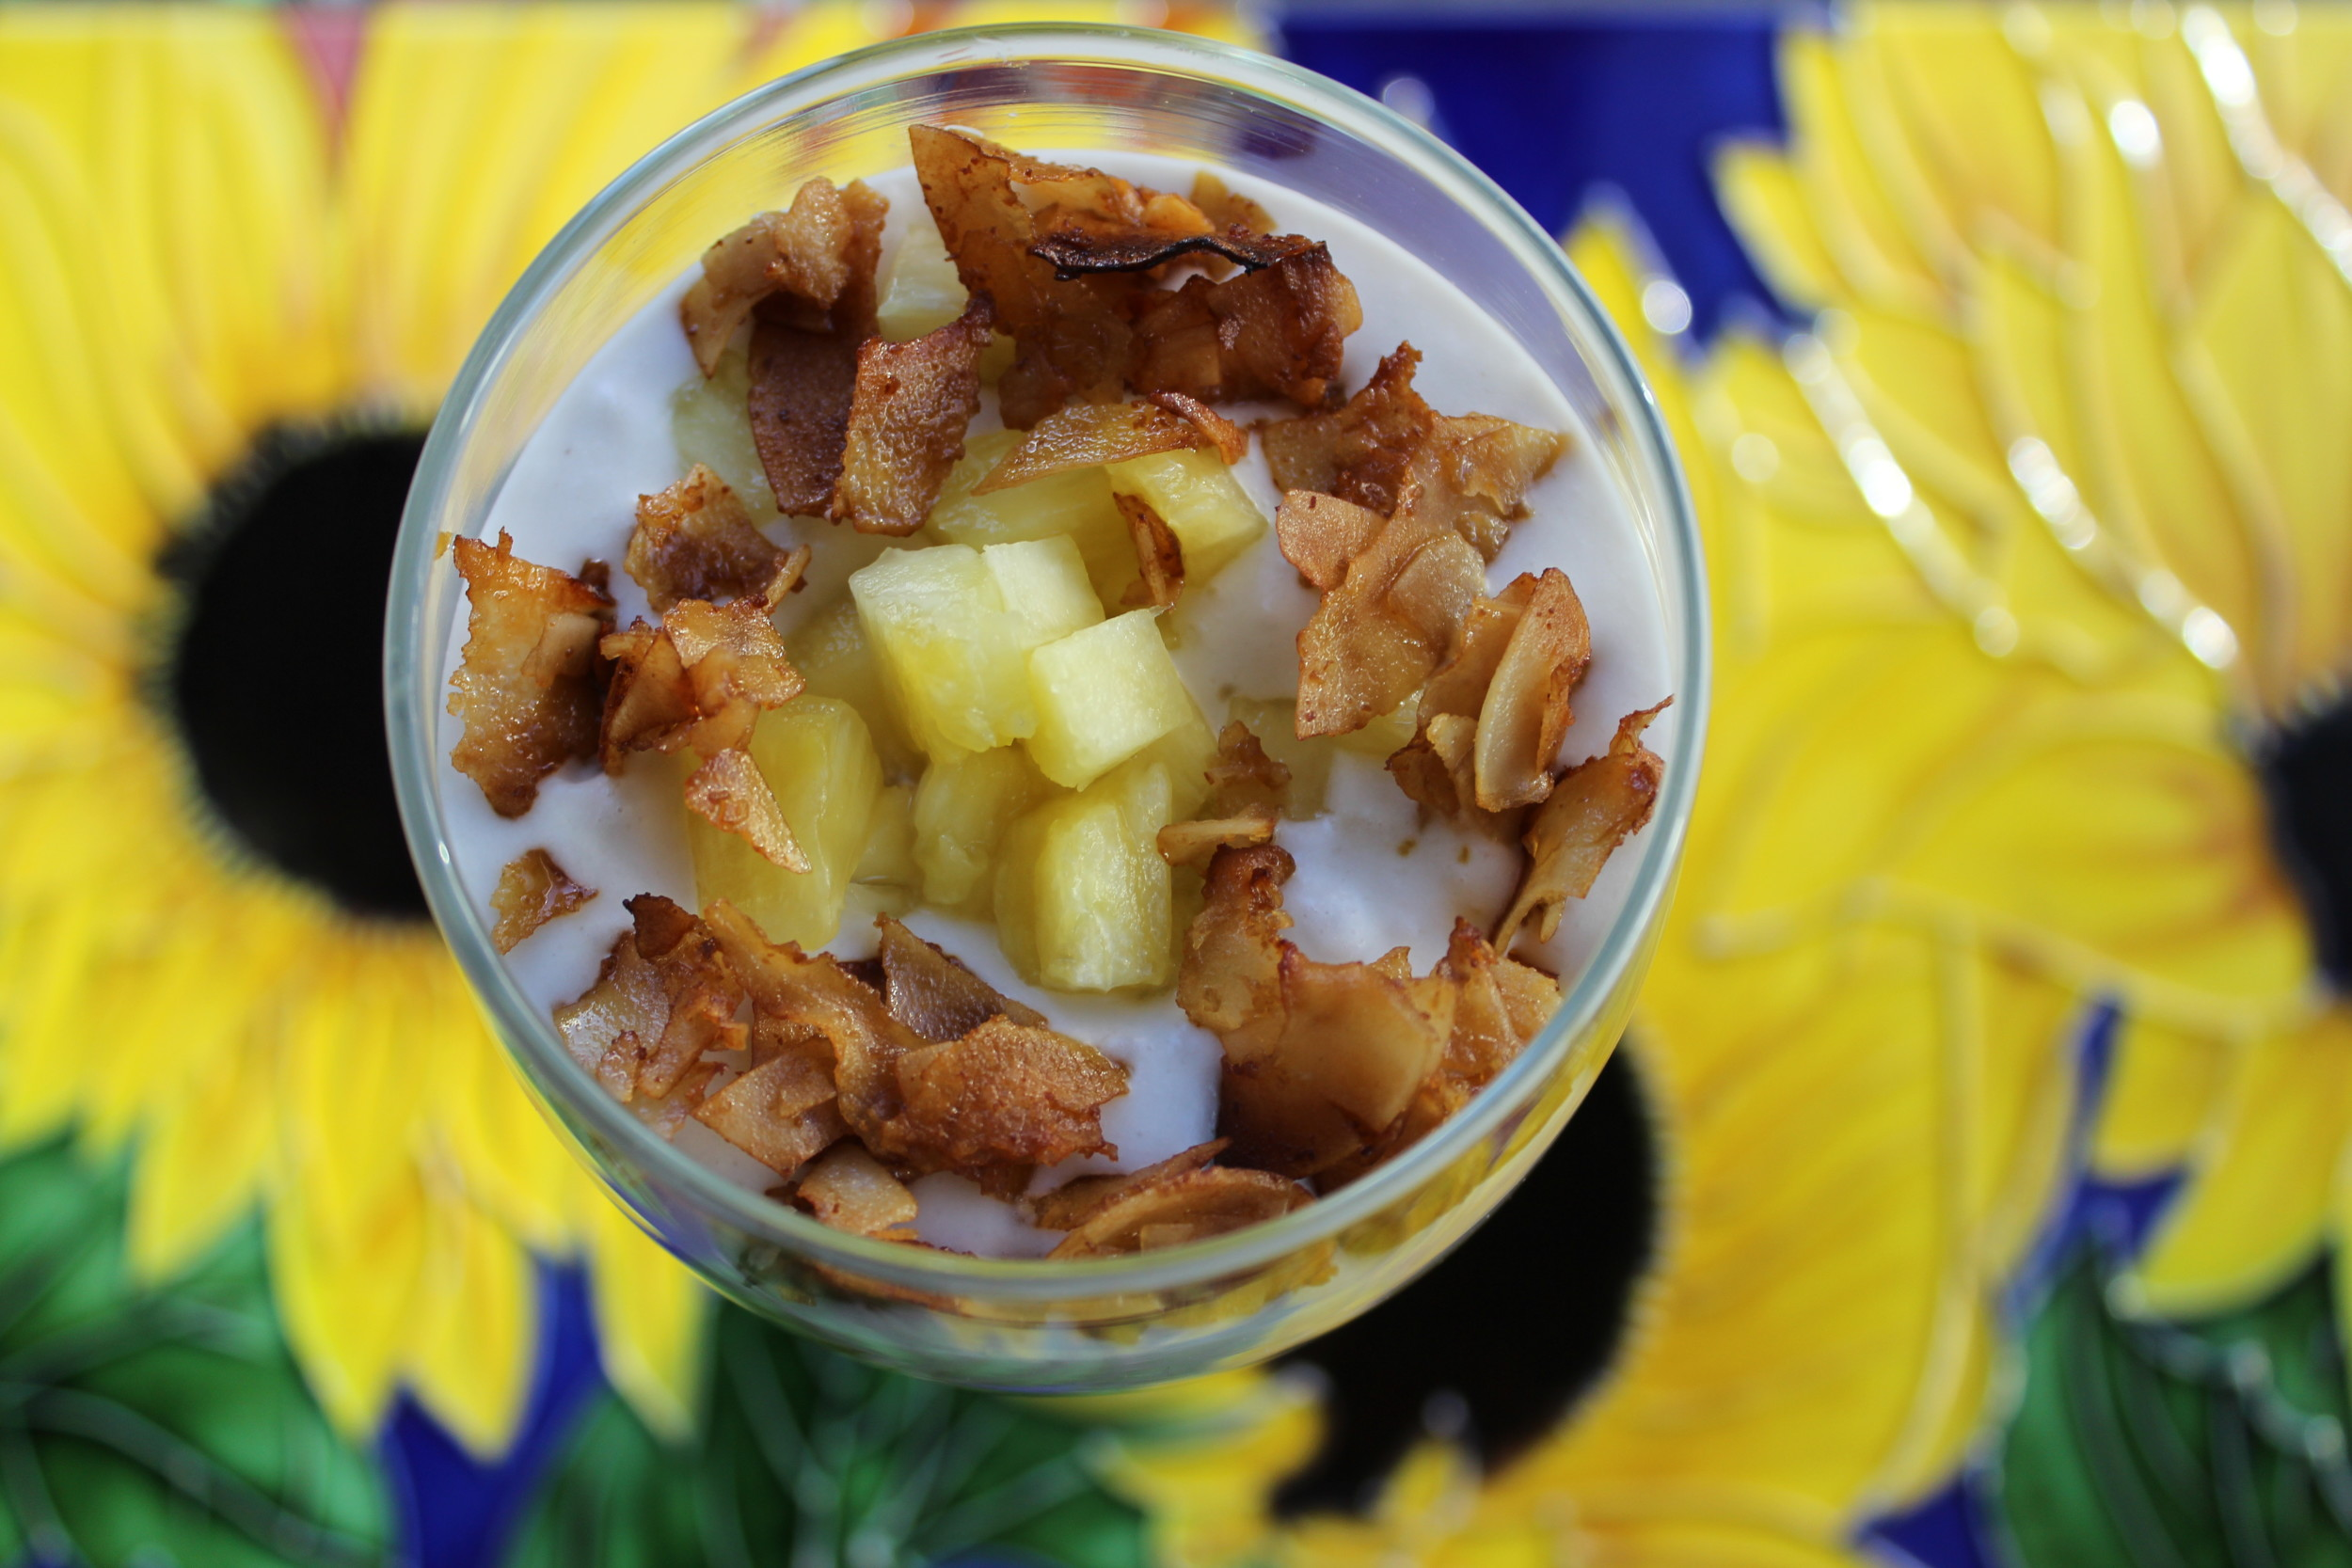 PineapplePudding